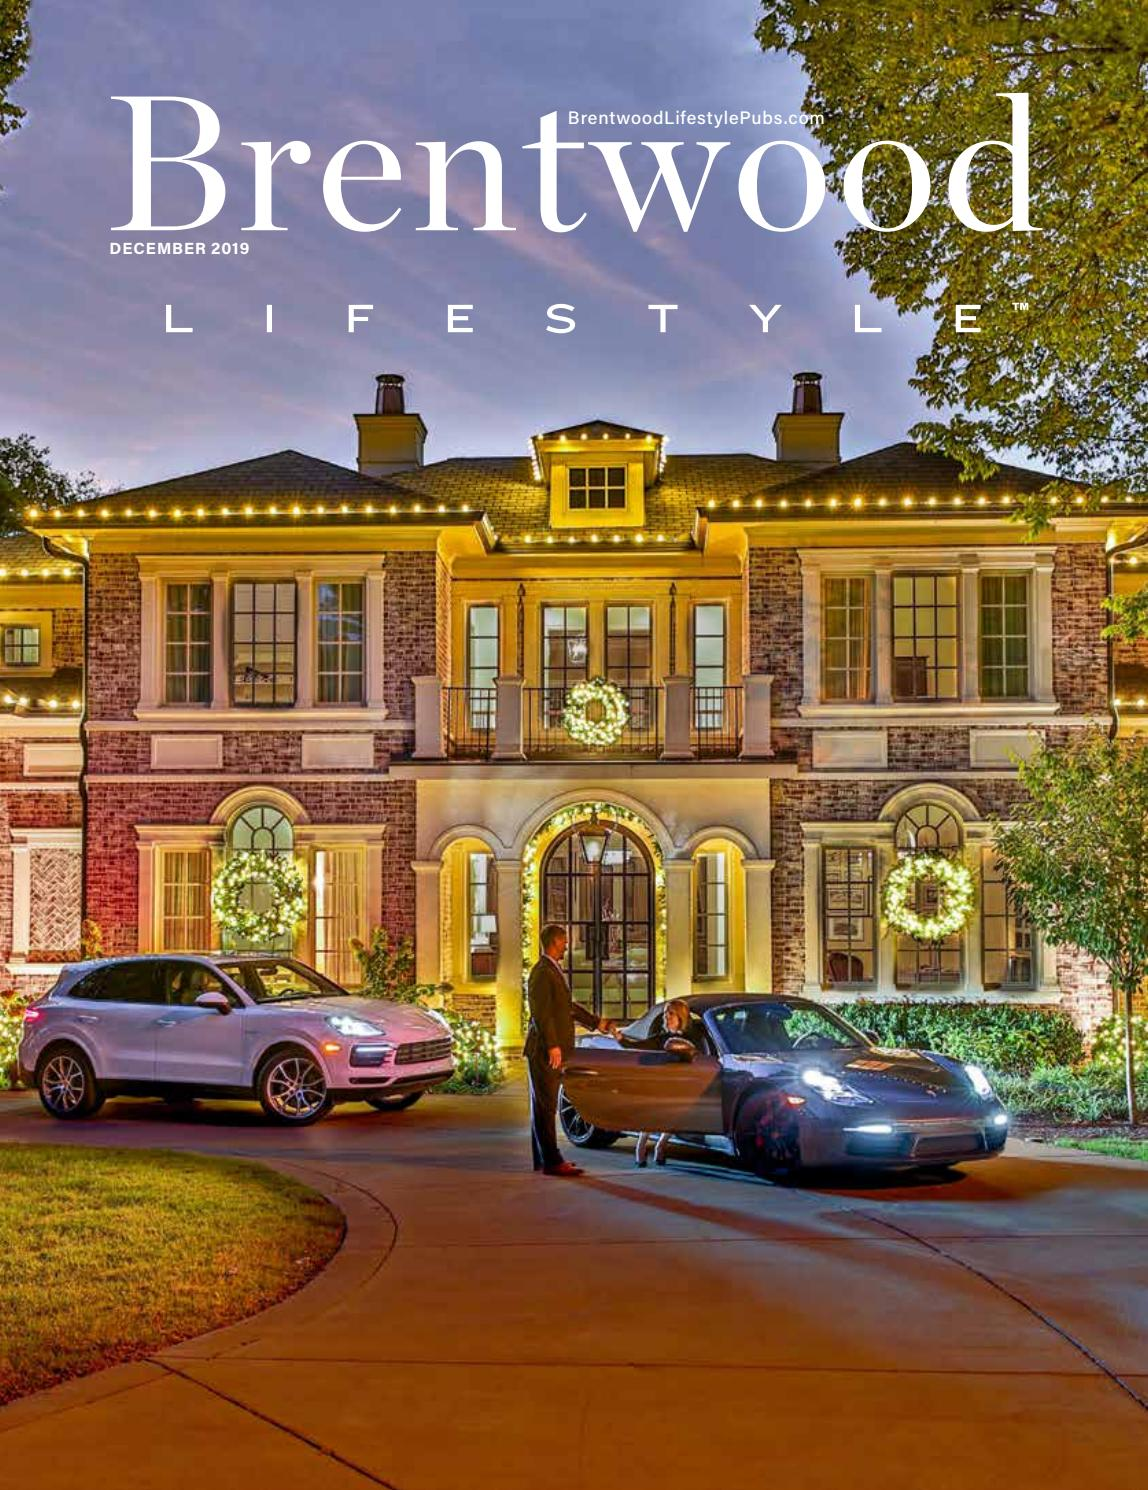 Angela Dip Nua brentwood, tn december 2019lifestyle publications - issuu